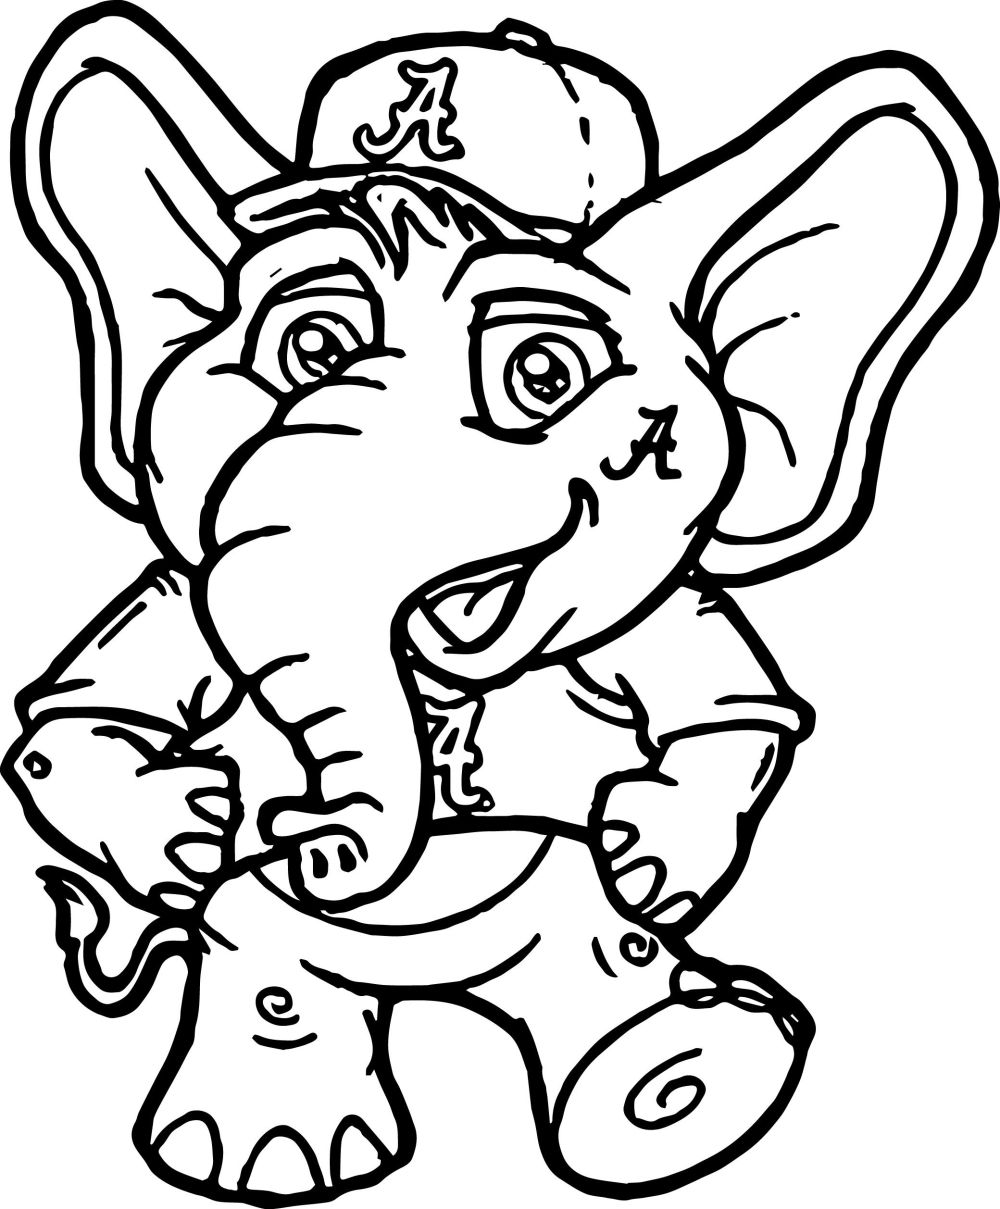 medium resolution of 2080x2515 alabama clipart university of alabama a text coloring page color